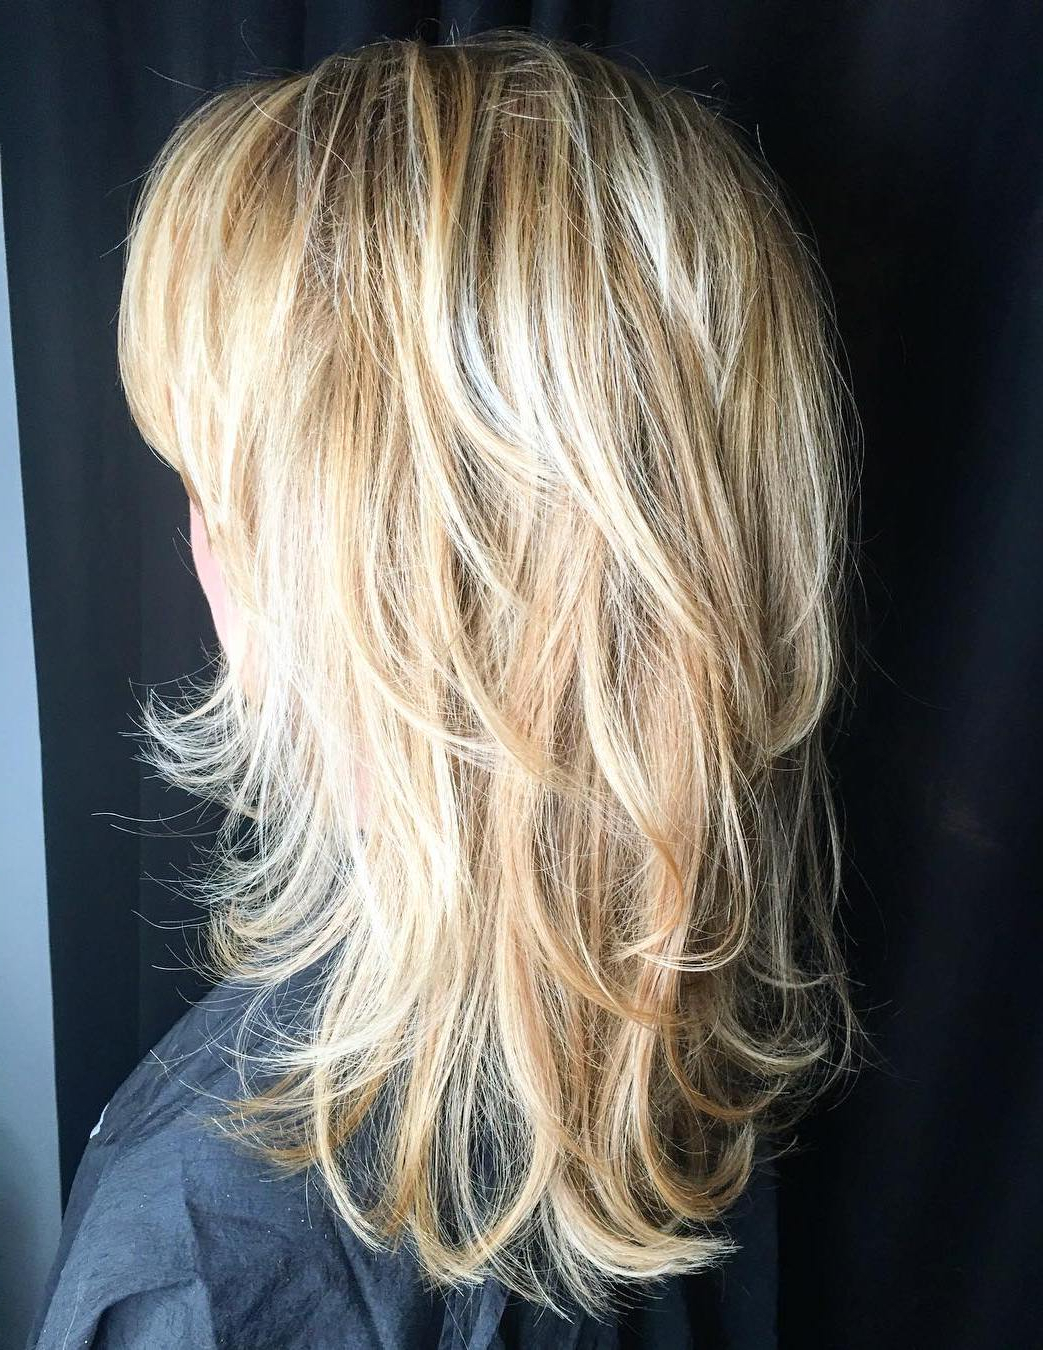 50 Lovely Long Shag Haircuts For Effortless Stylish Looks With Famous Choppy Chestnut Locks For Long Hairstyles (View 3 of 20)